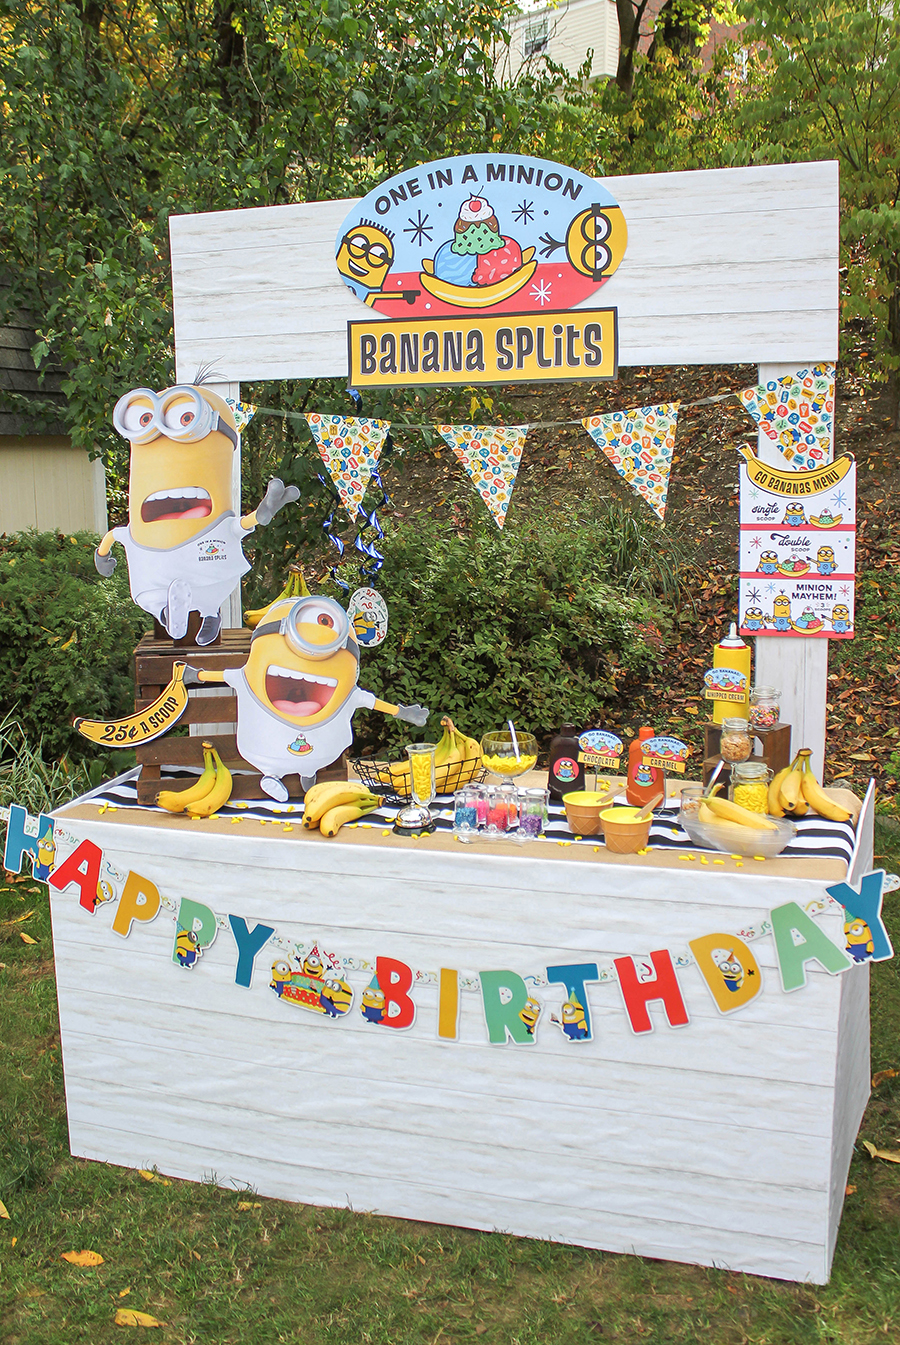 Minions Birthday Party, minions, kids party, kids birthday, ice cream party, banana split, one in a minion, banana split party, one in a minion banana splits, banana, minion, here's the scoop, DIY ice cream bar, DIY banana split bar, Minions party ideas, minions food ideas, Minions birthday party decorations, Minions birthday party theme, Minions birthday party ideas, Just Add Confetti, banana split stand, backyard birthday party, outdoor party, banana stand, ice cream stand